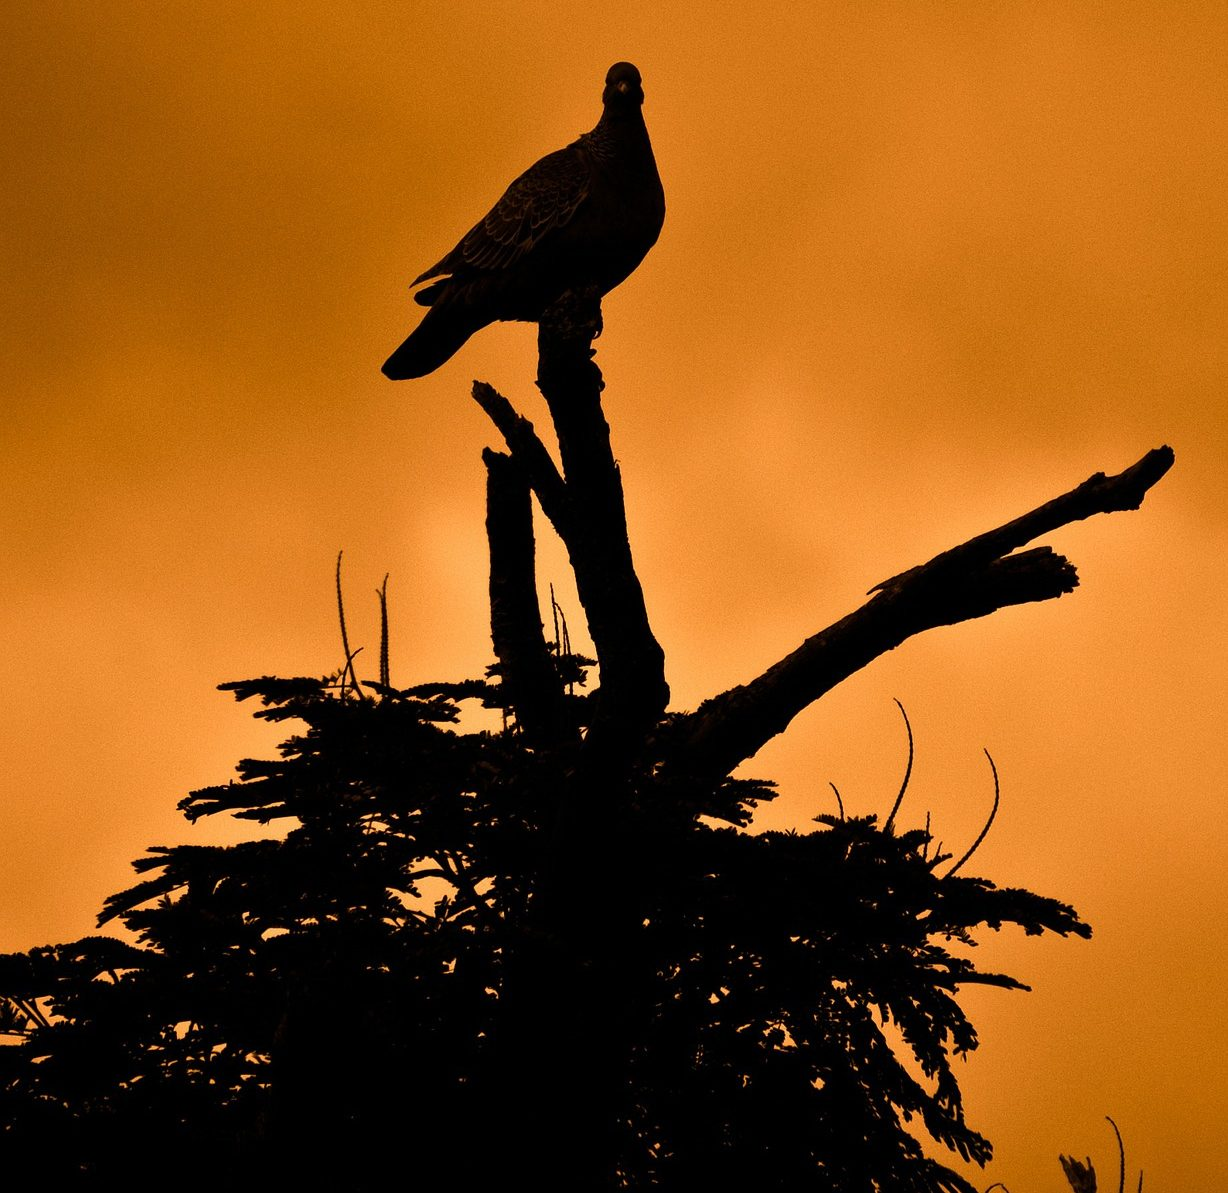 Dove on a tree silhouetted against an orange sky